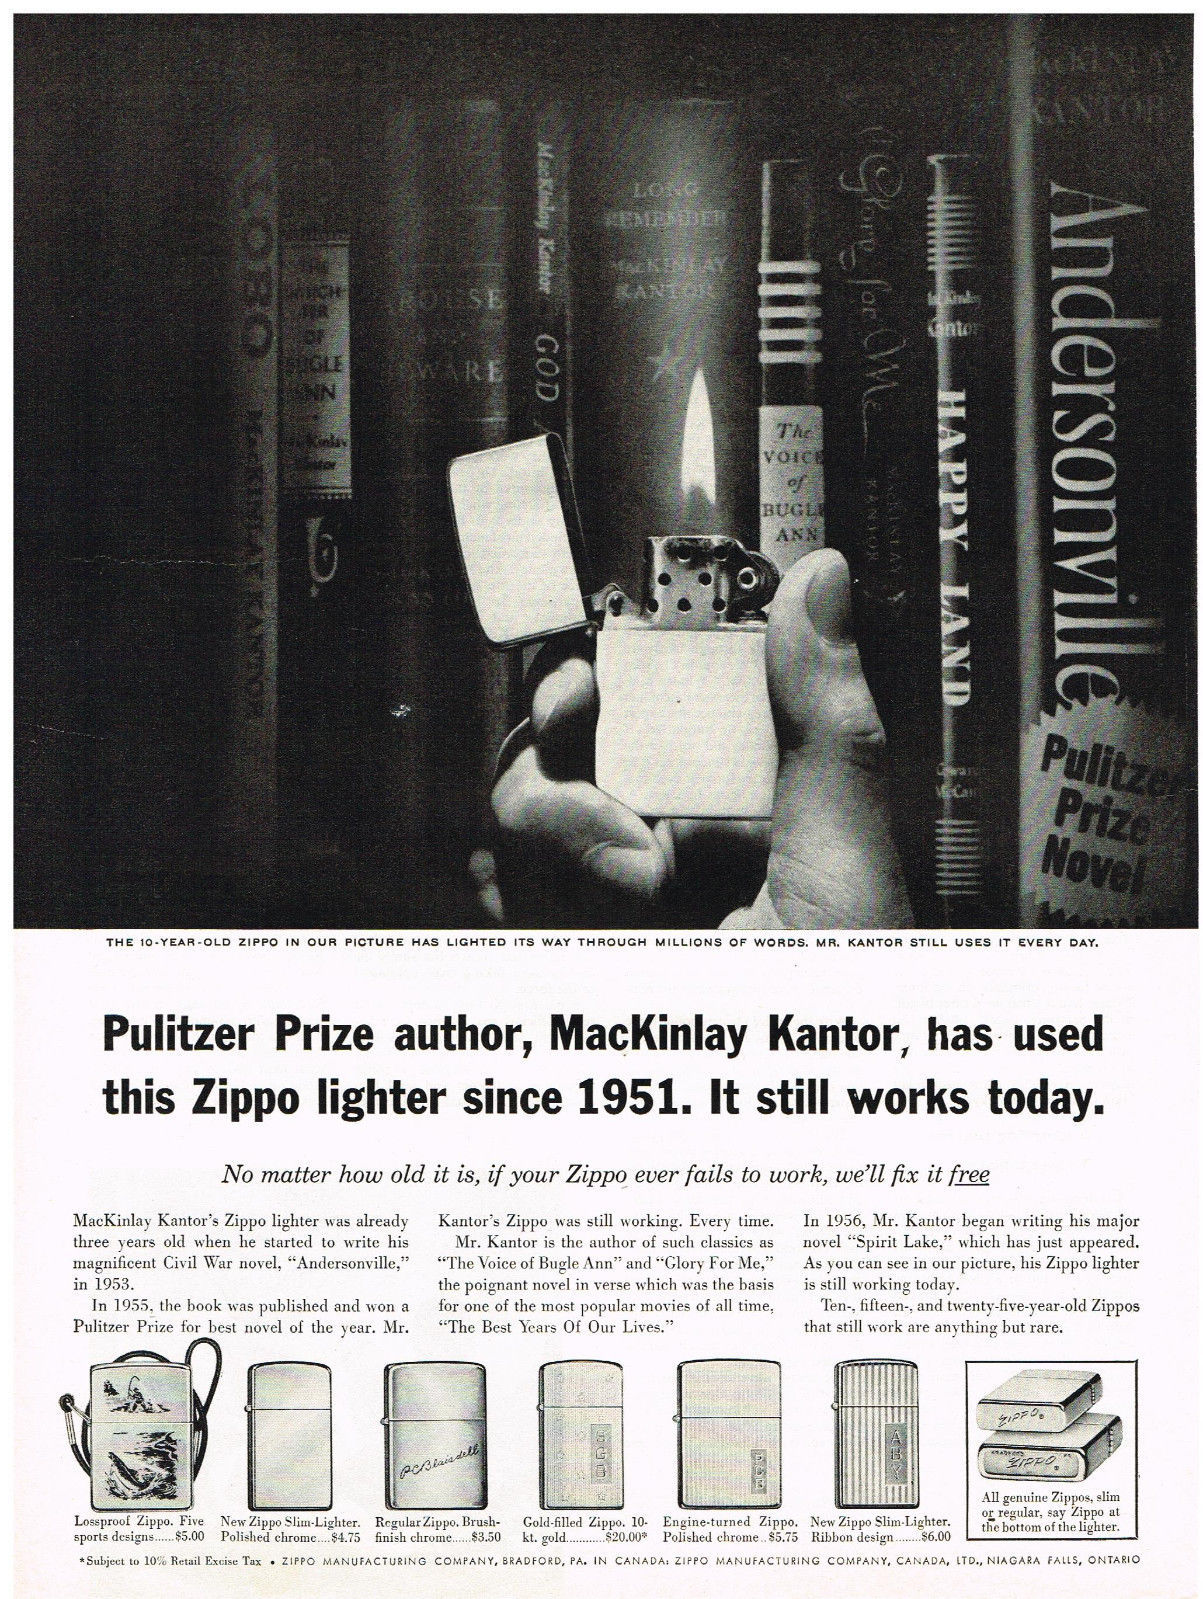 Vintage 1962 Magazine Ad Zippo Lighter No Matter How Old It Is We Fix Free - $5.93